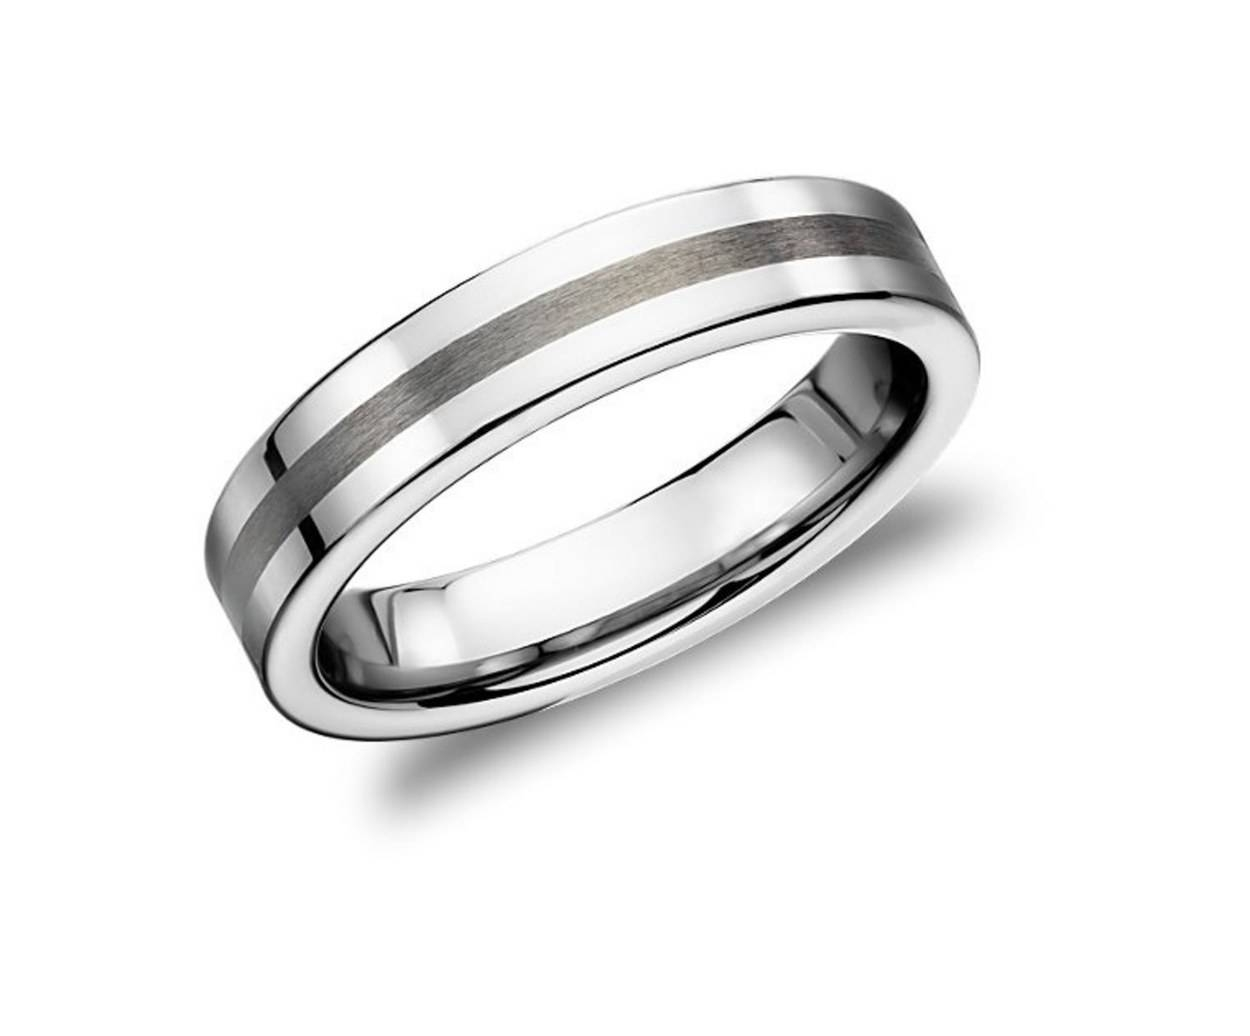 15 Men's Wedding Bands Your Groom Won't Want To Take Off | Glamour With Regard To Mens Square Wedding Bands (View 1 of 15)